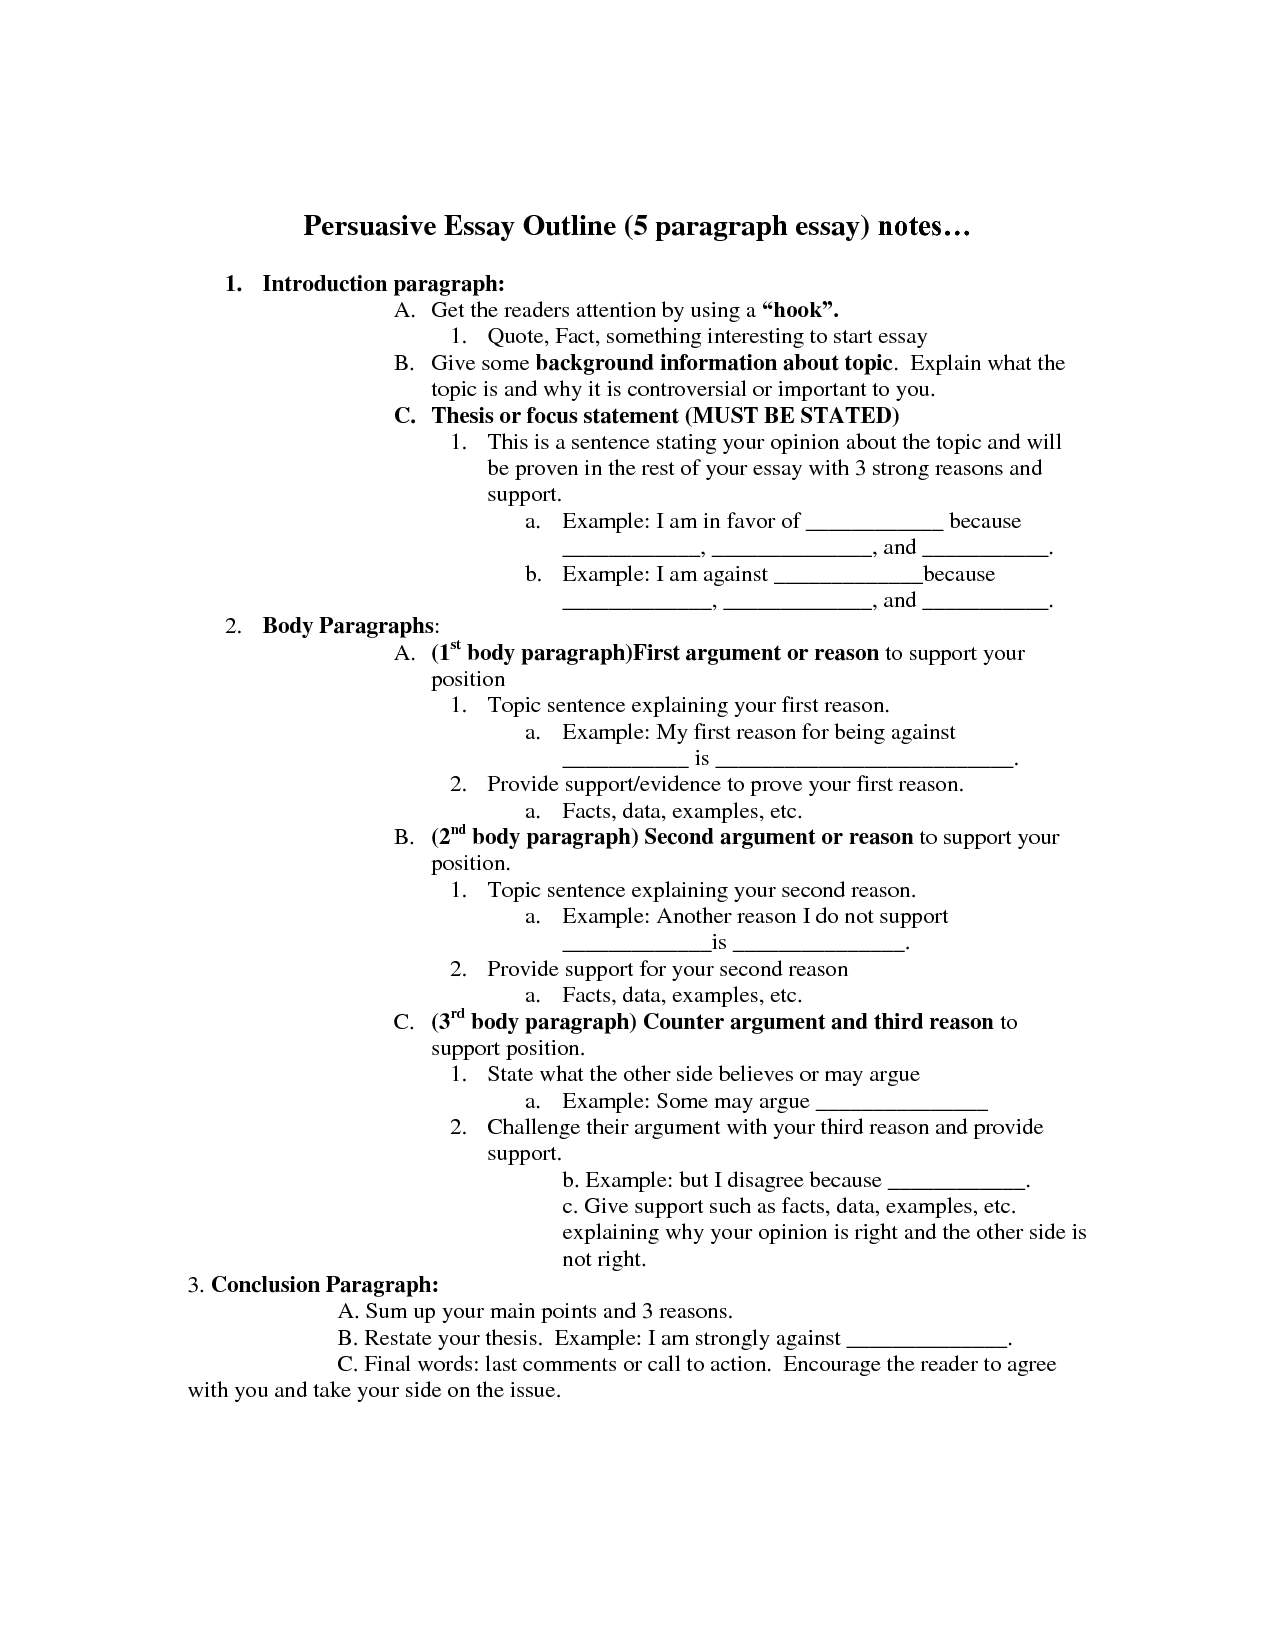 006 Persuasive Essay Outline Unbelievable Good Topics 5th Grade Format Middle School Example Full